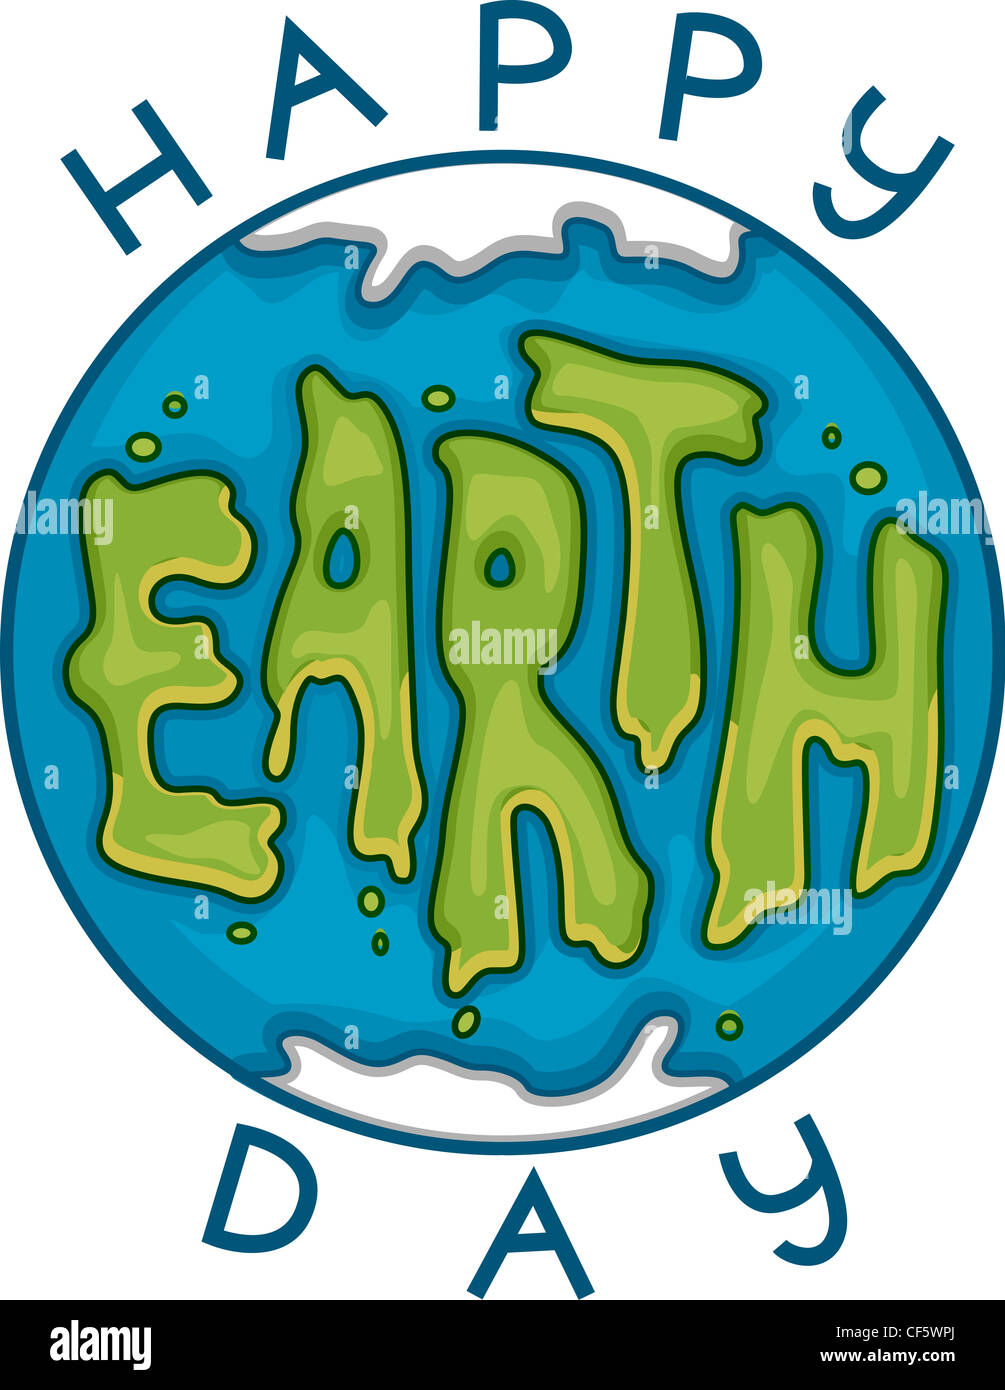 Illustration Celebrating Earth Day - Stock Image